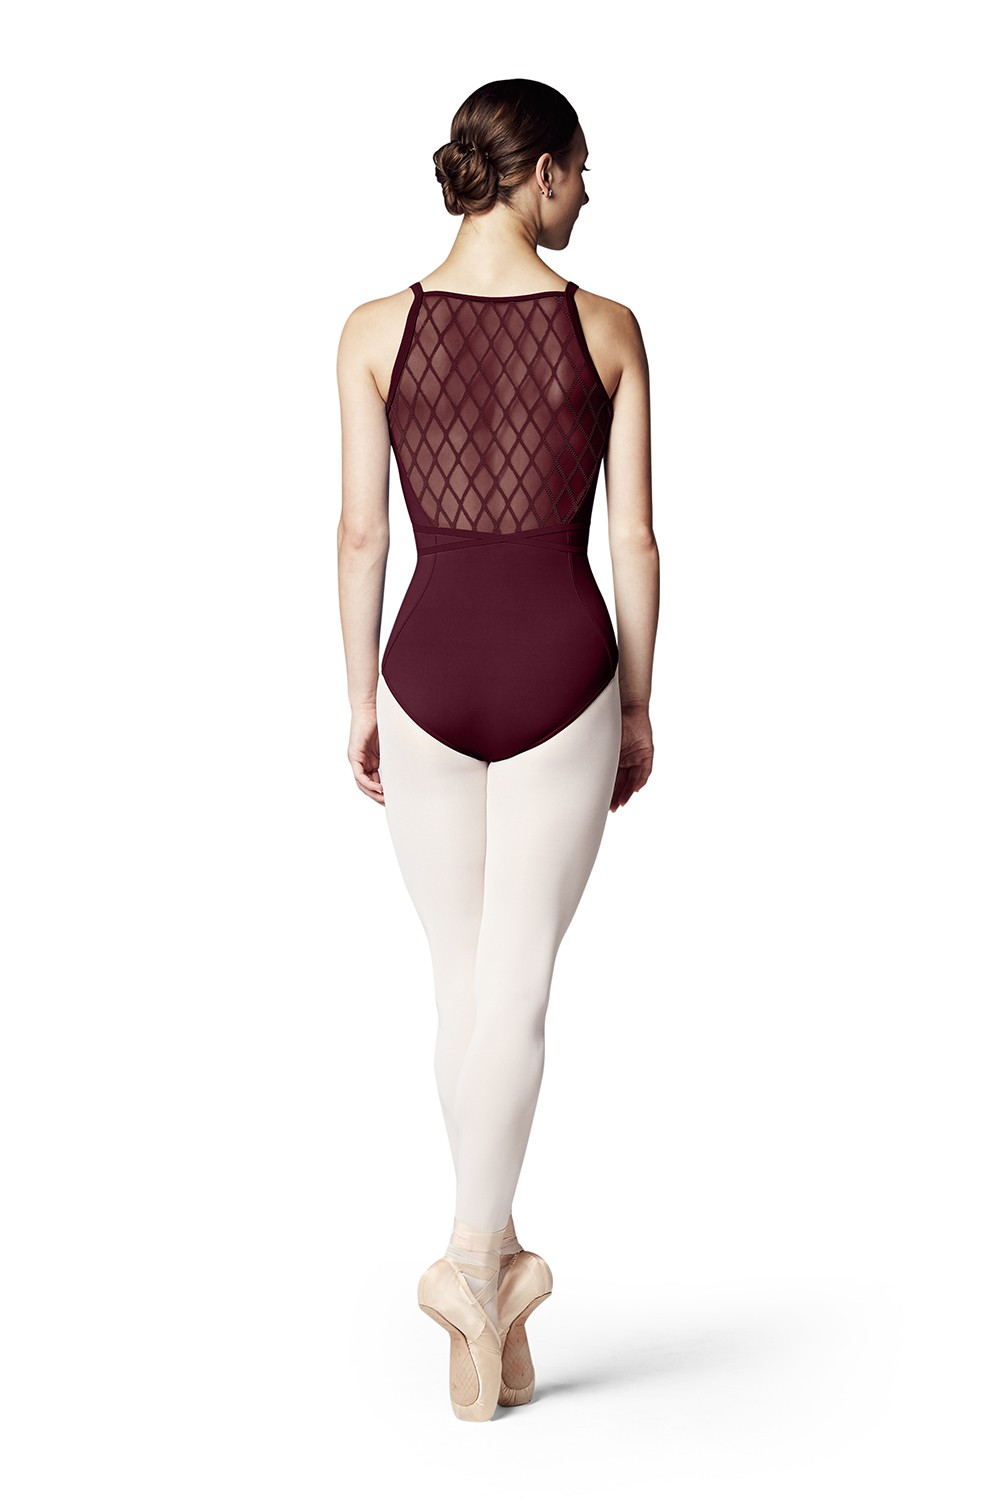 Lexi Womens Camisole Leotards